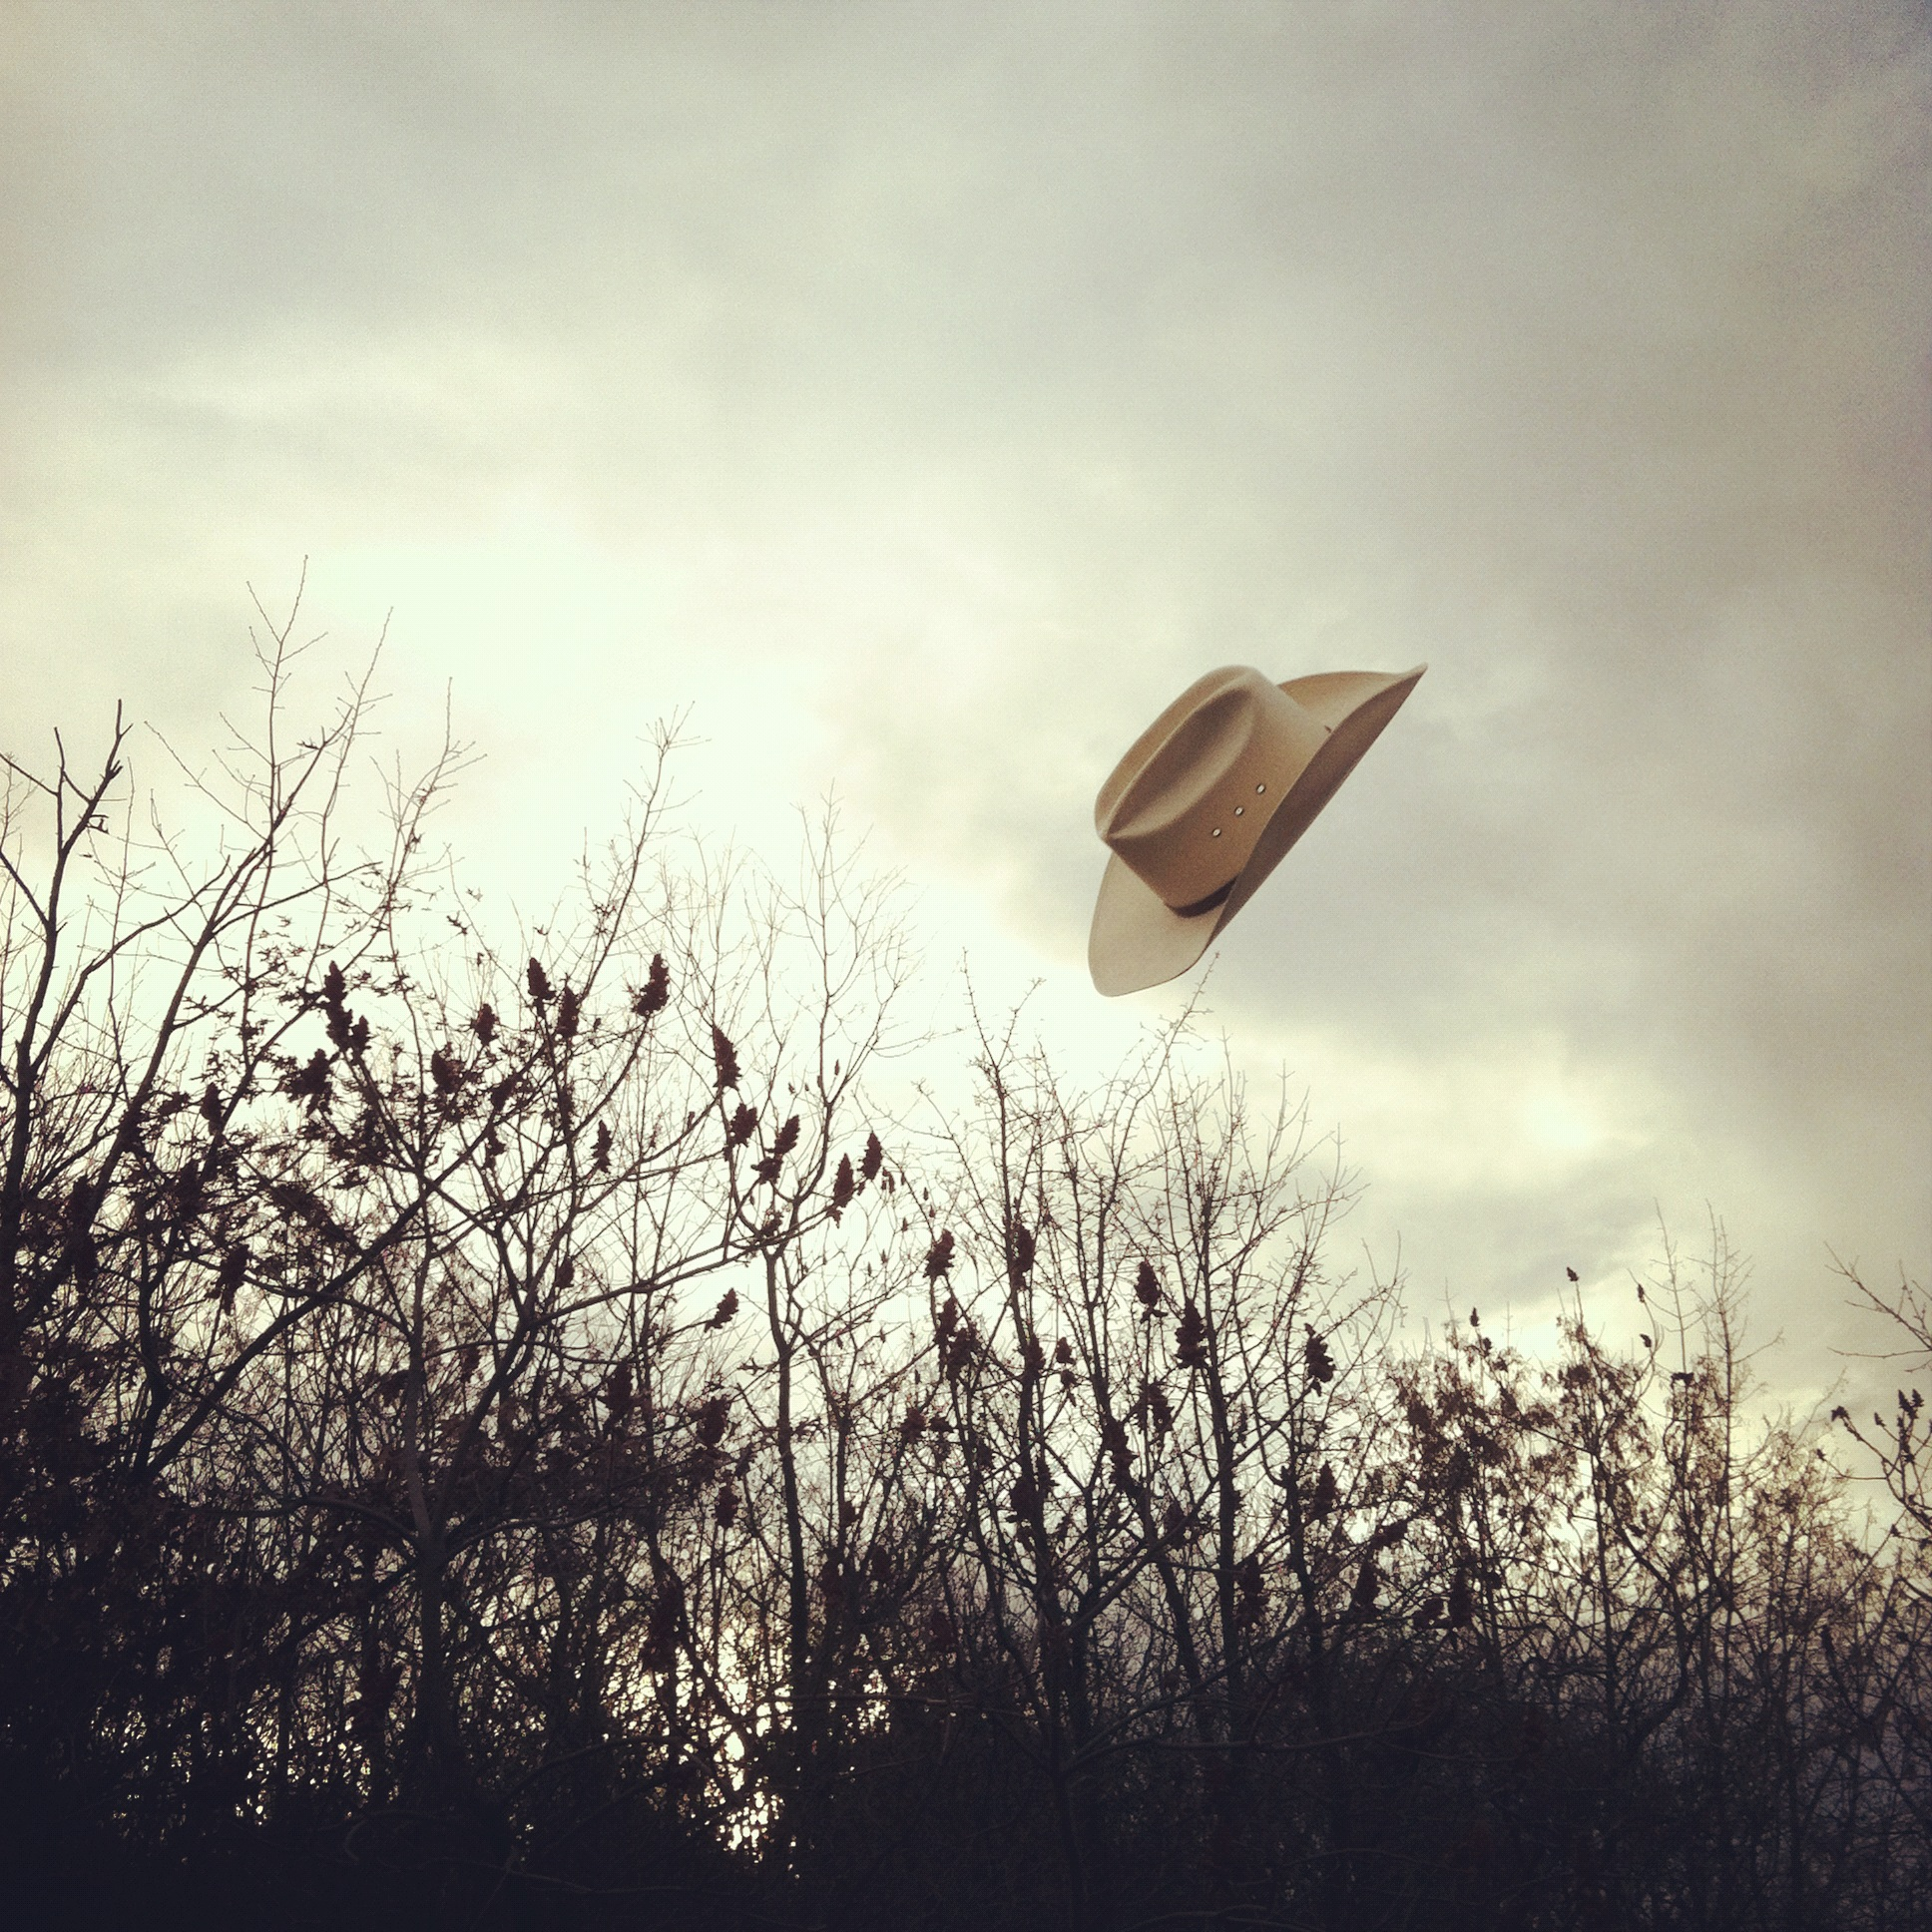 Image of cowboy hat in the air